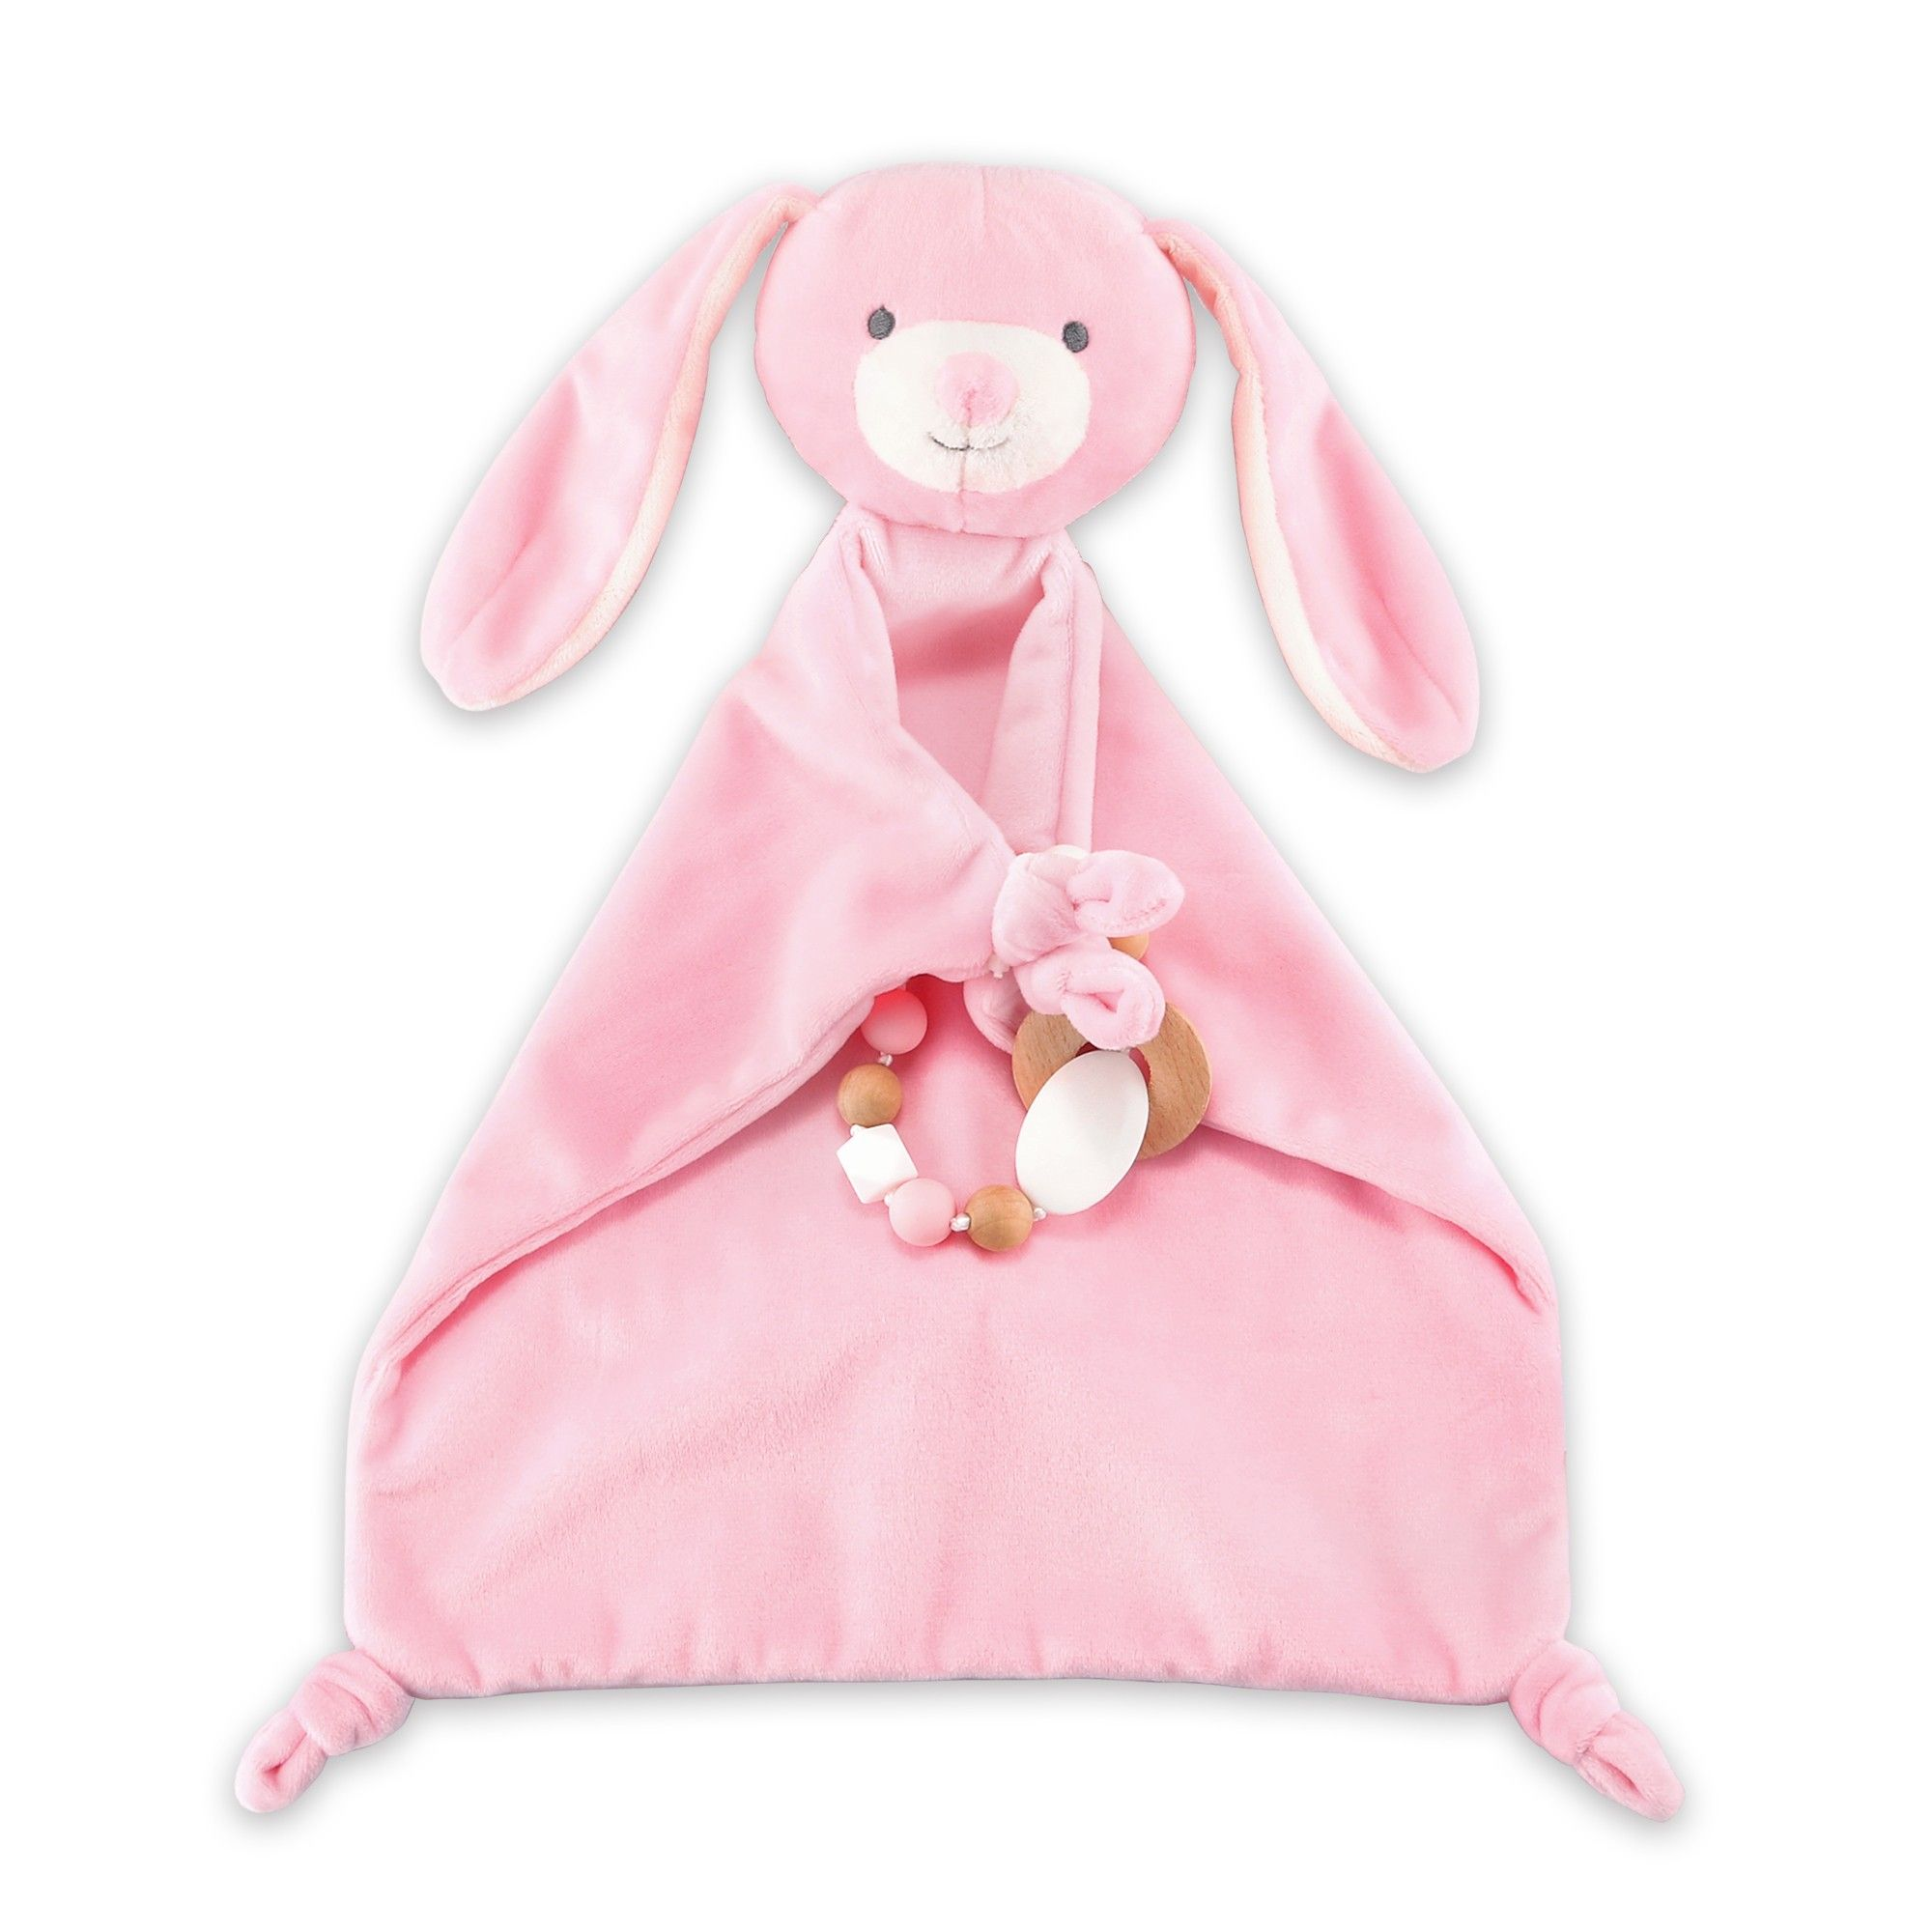 Soft Plush Bunny Rabbit Musical Pull Chime Toy ~ Pink